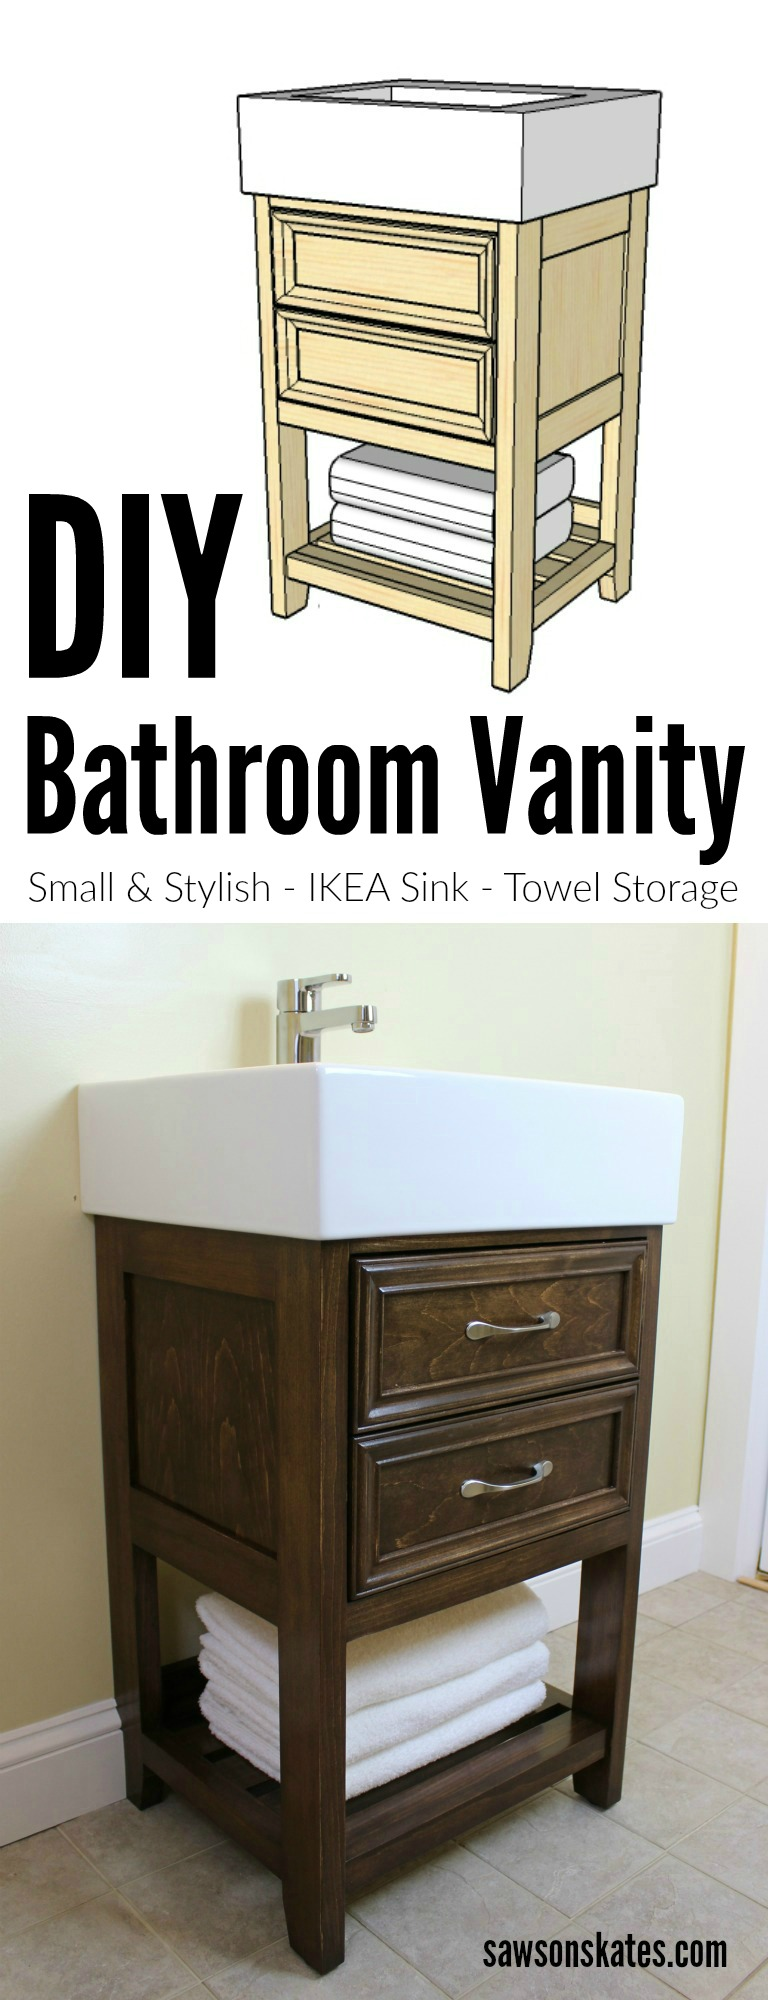 Looking For Small DIY Bathroom Vanity Ideas? Check Out The Plans For This DIY  Vanity